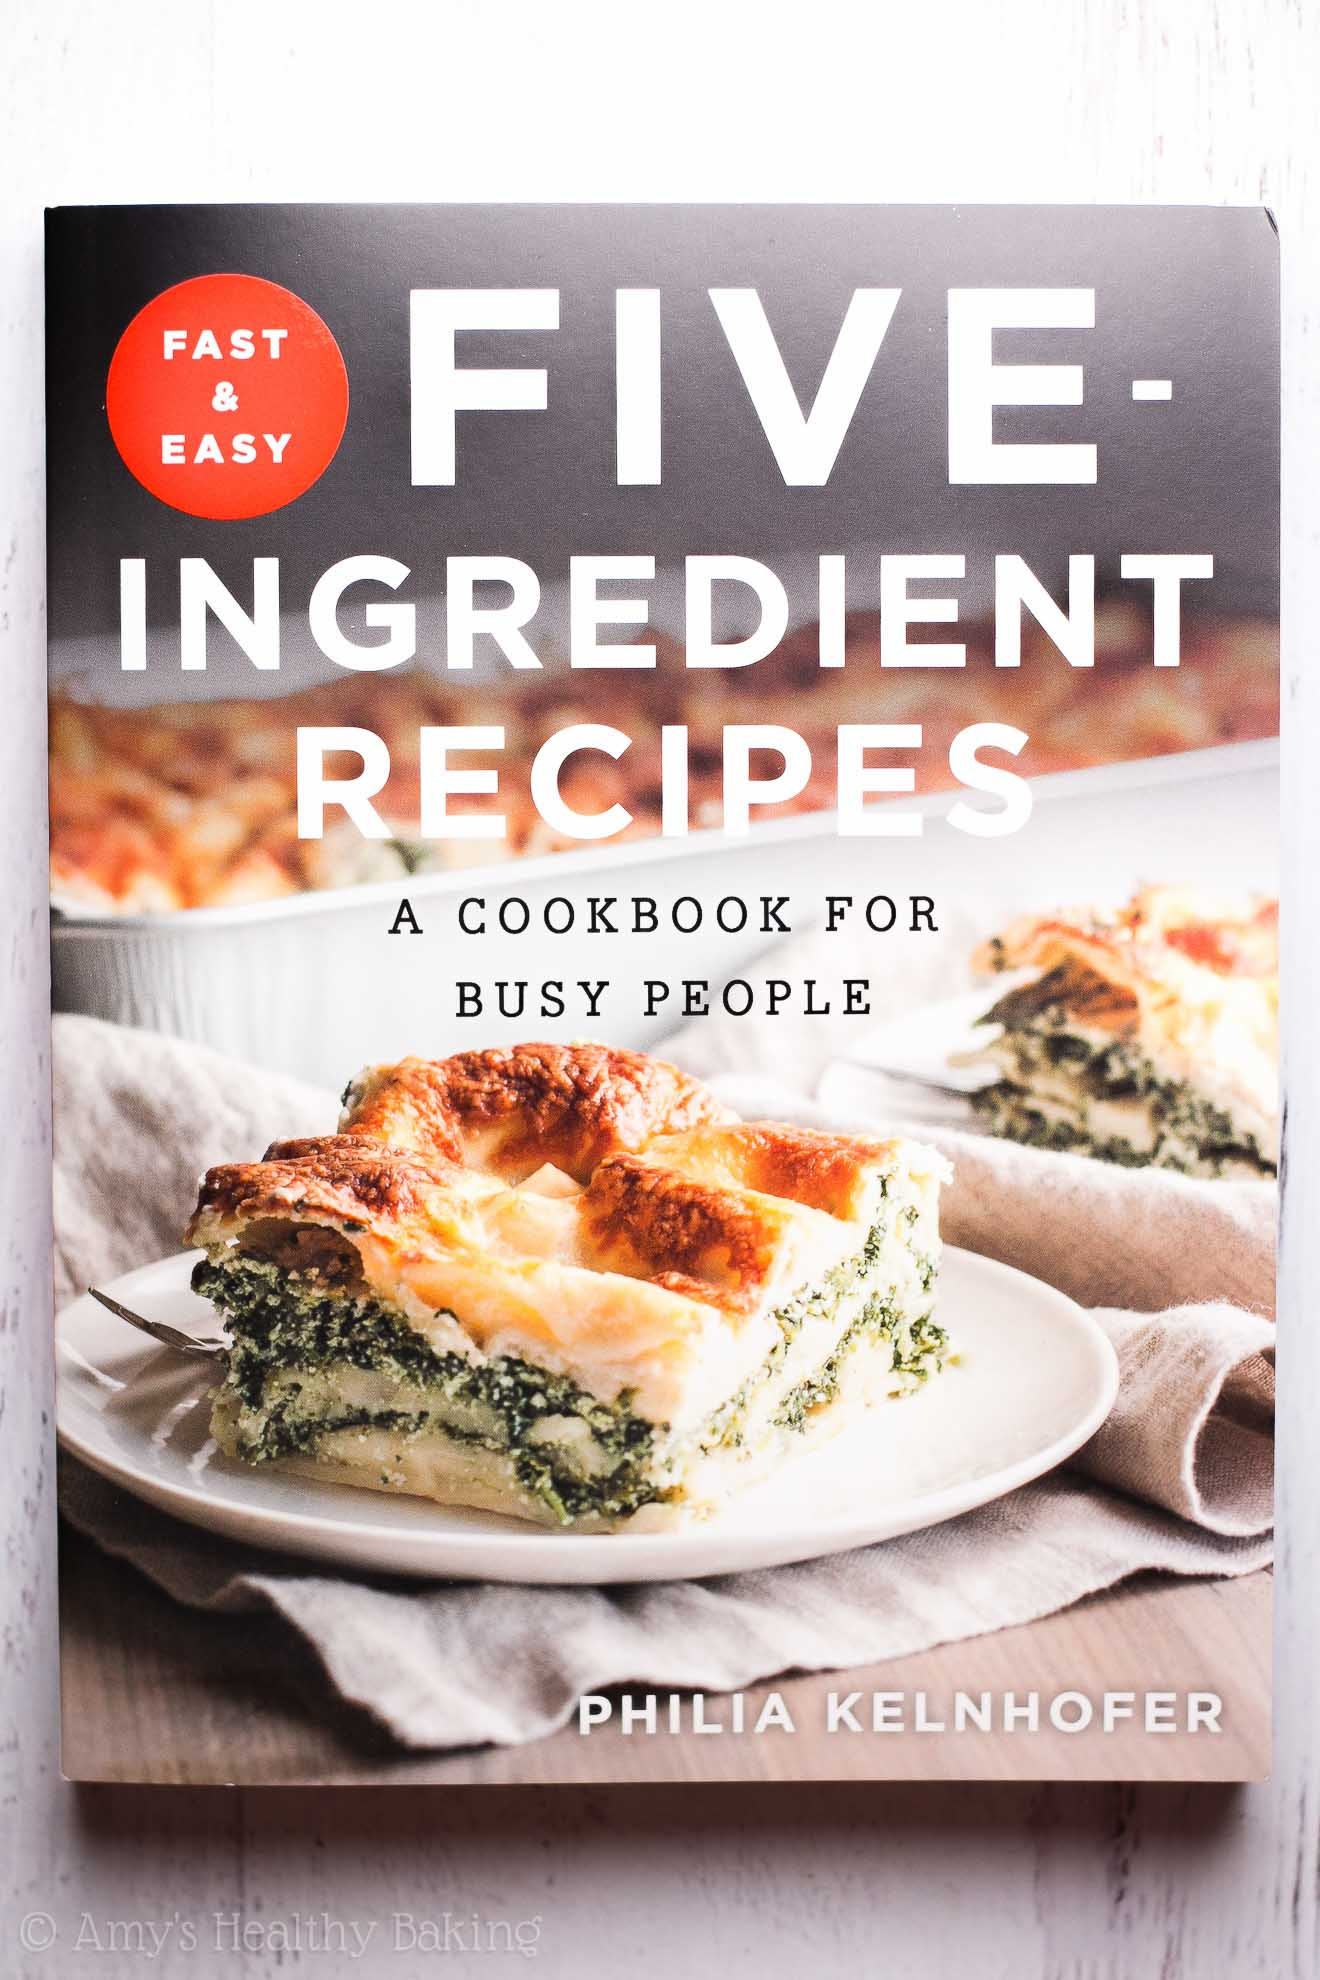 Fast and Easy Five-Ingredient Recipes: A Cookbook for Busy People by @sweetphi